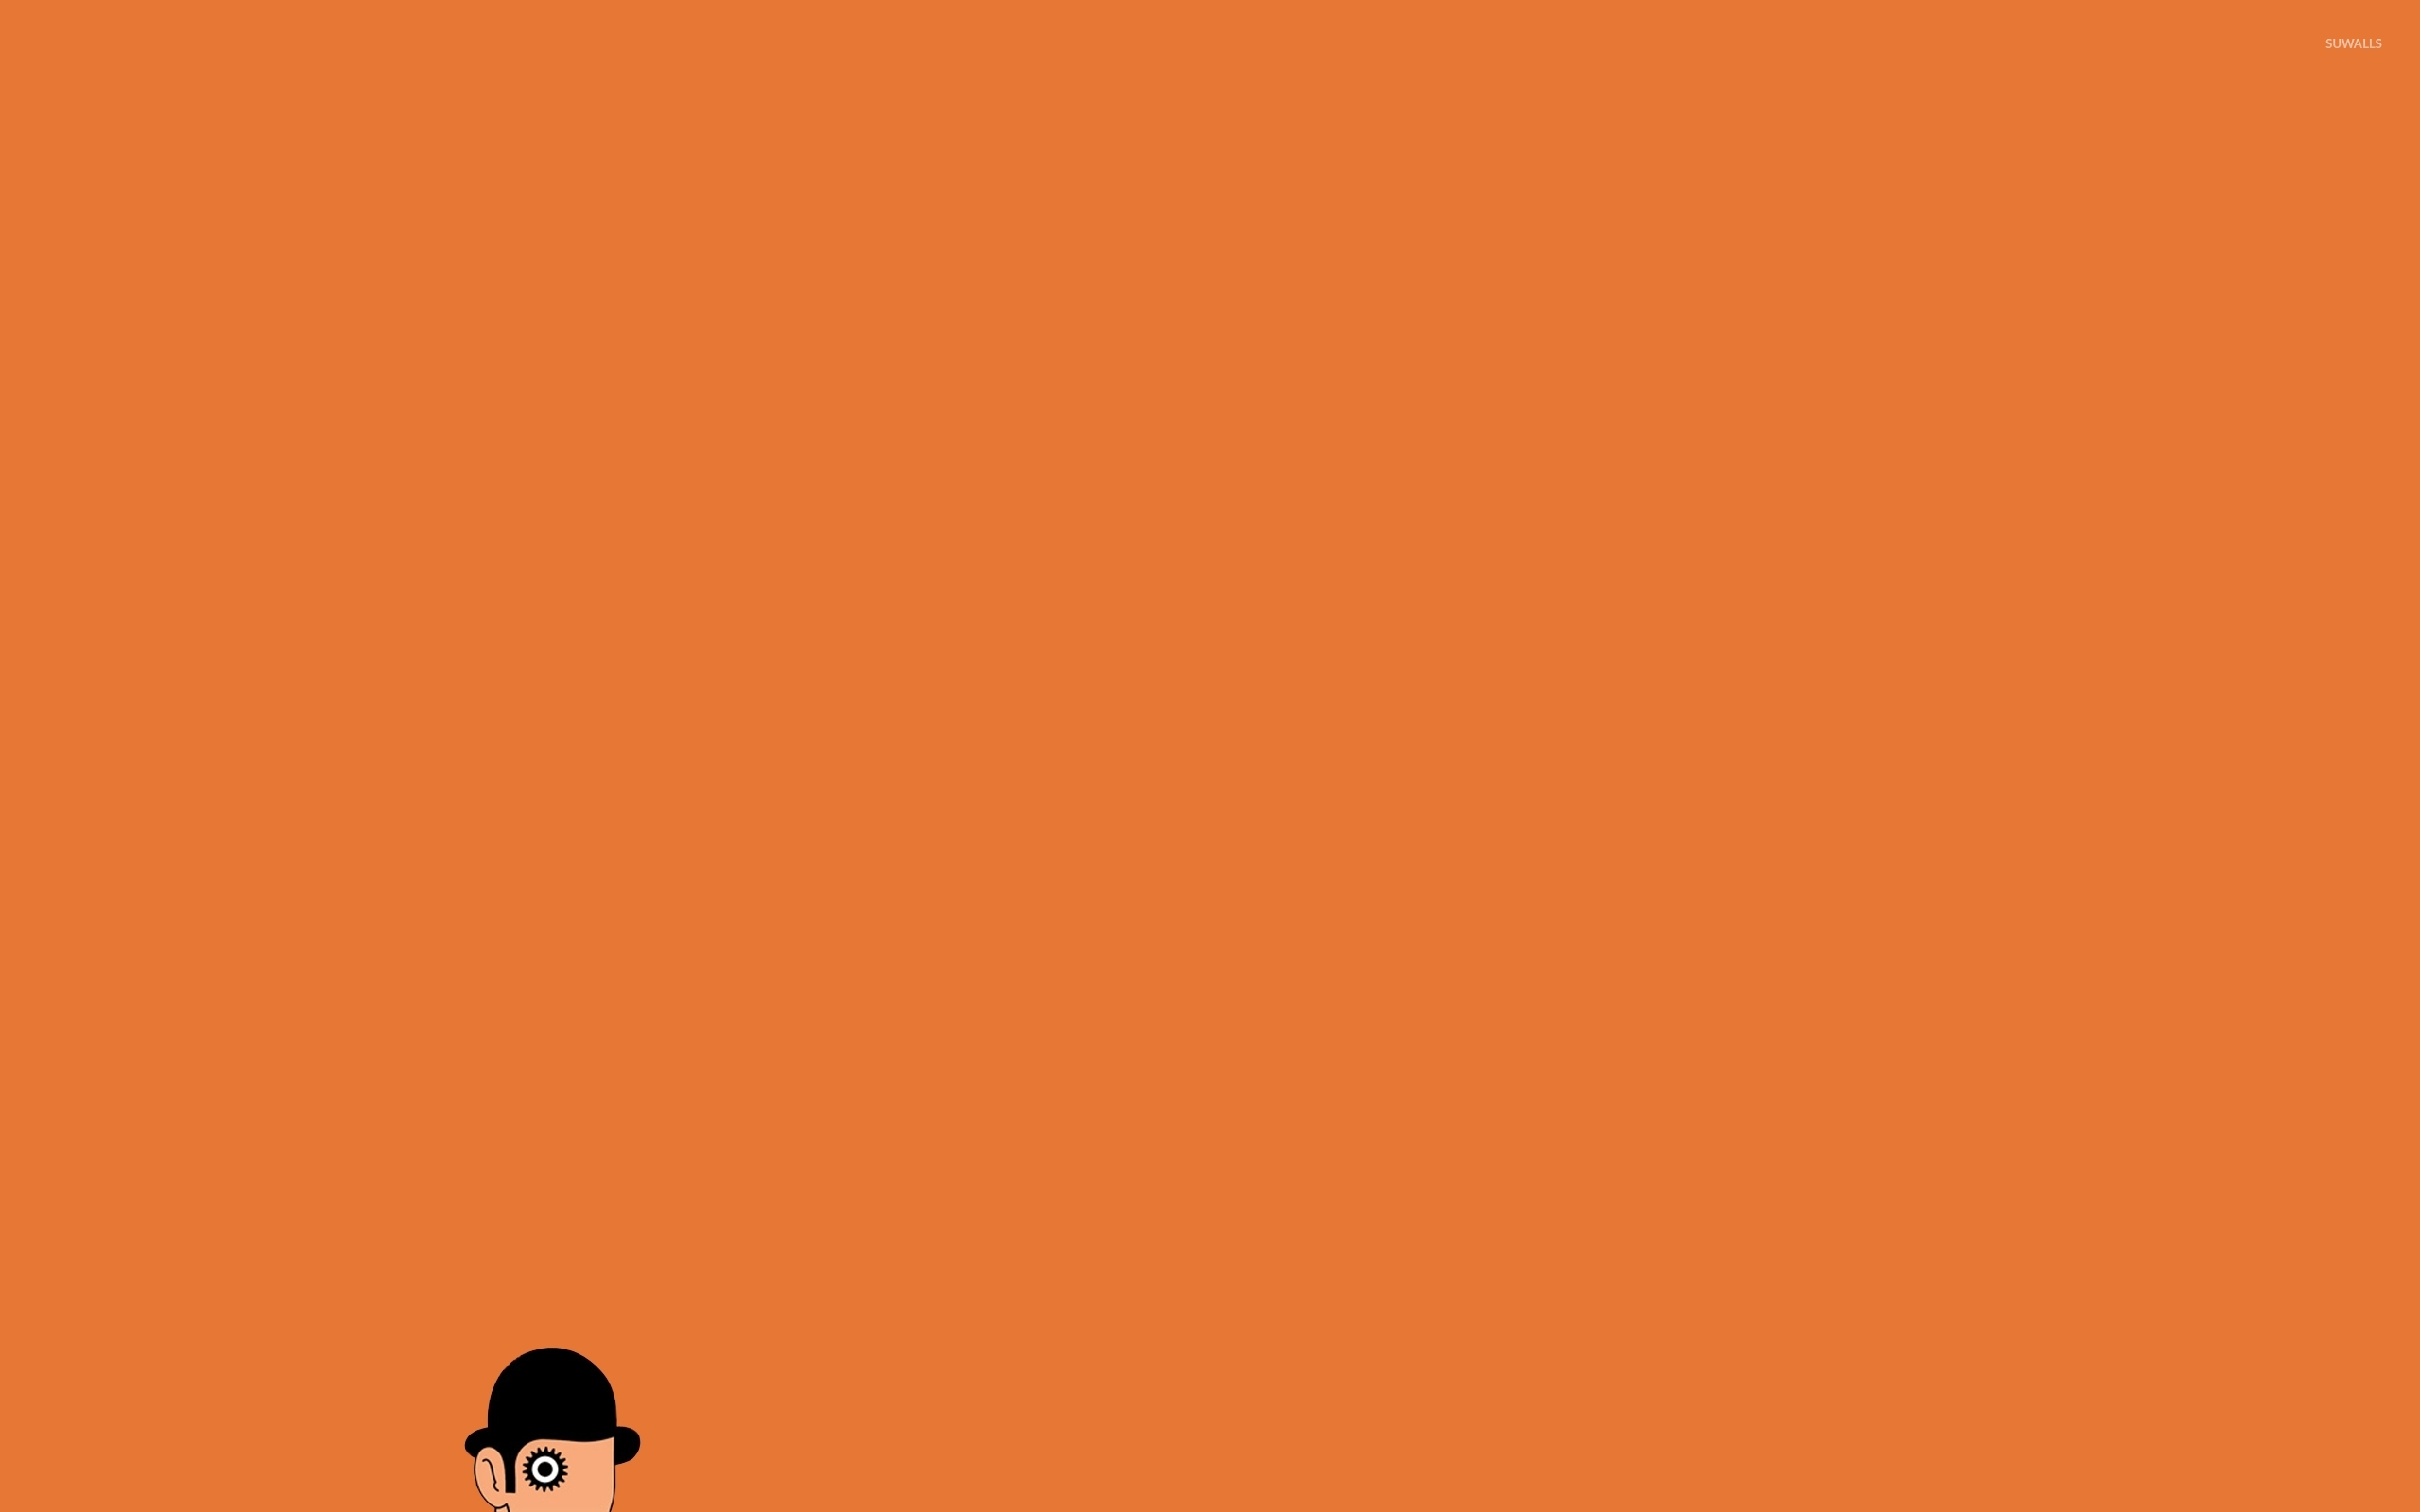 Top A Clockwork Orange Pete Images for Pinterest Tattoos A Clockwork Orange Wallpaper 1920x1080